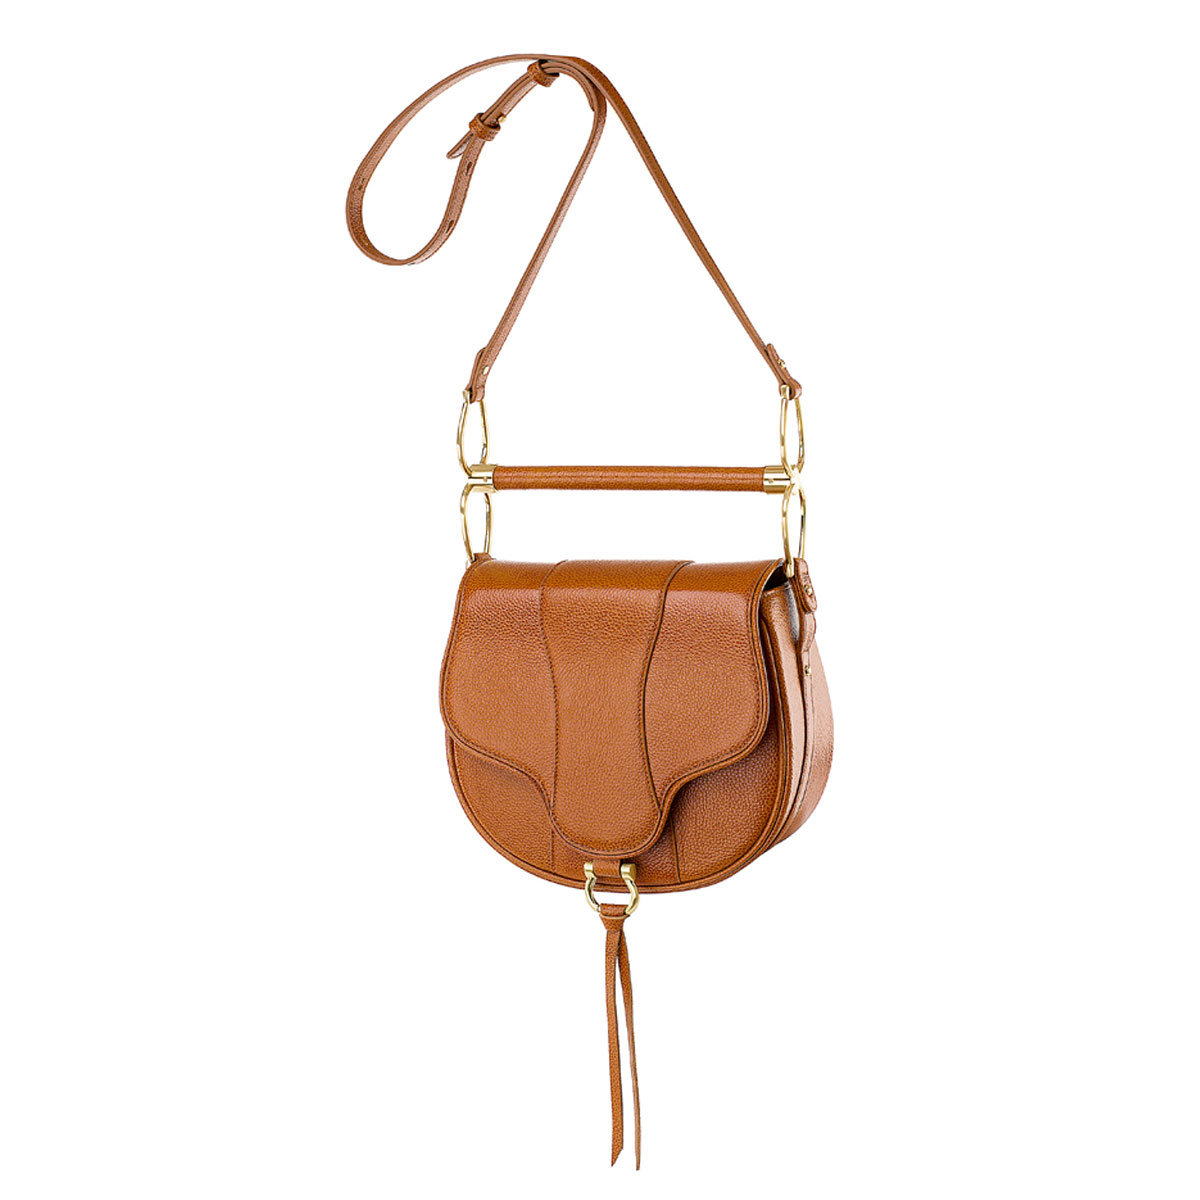 Sancia Babylon Bag in Cashew